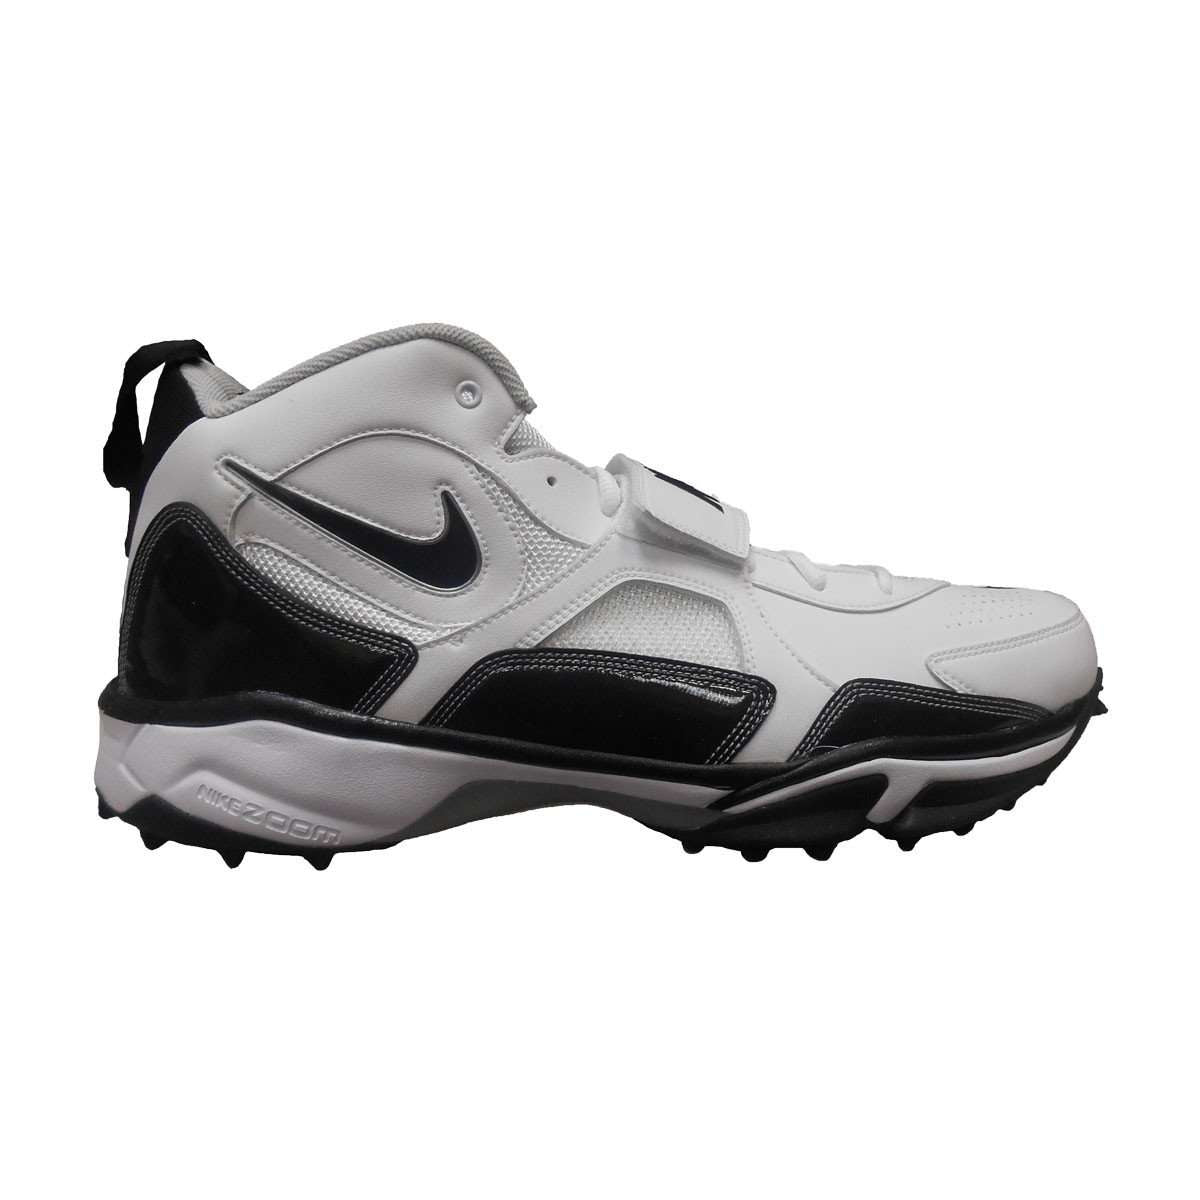 quality design 2da36 bb5be Nike Zoom Code Destroyer Wide Football Cleats – League Outfitters